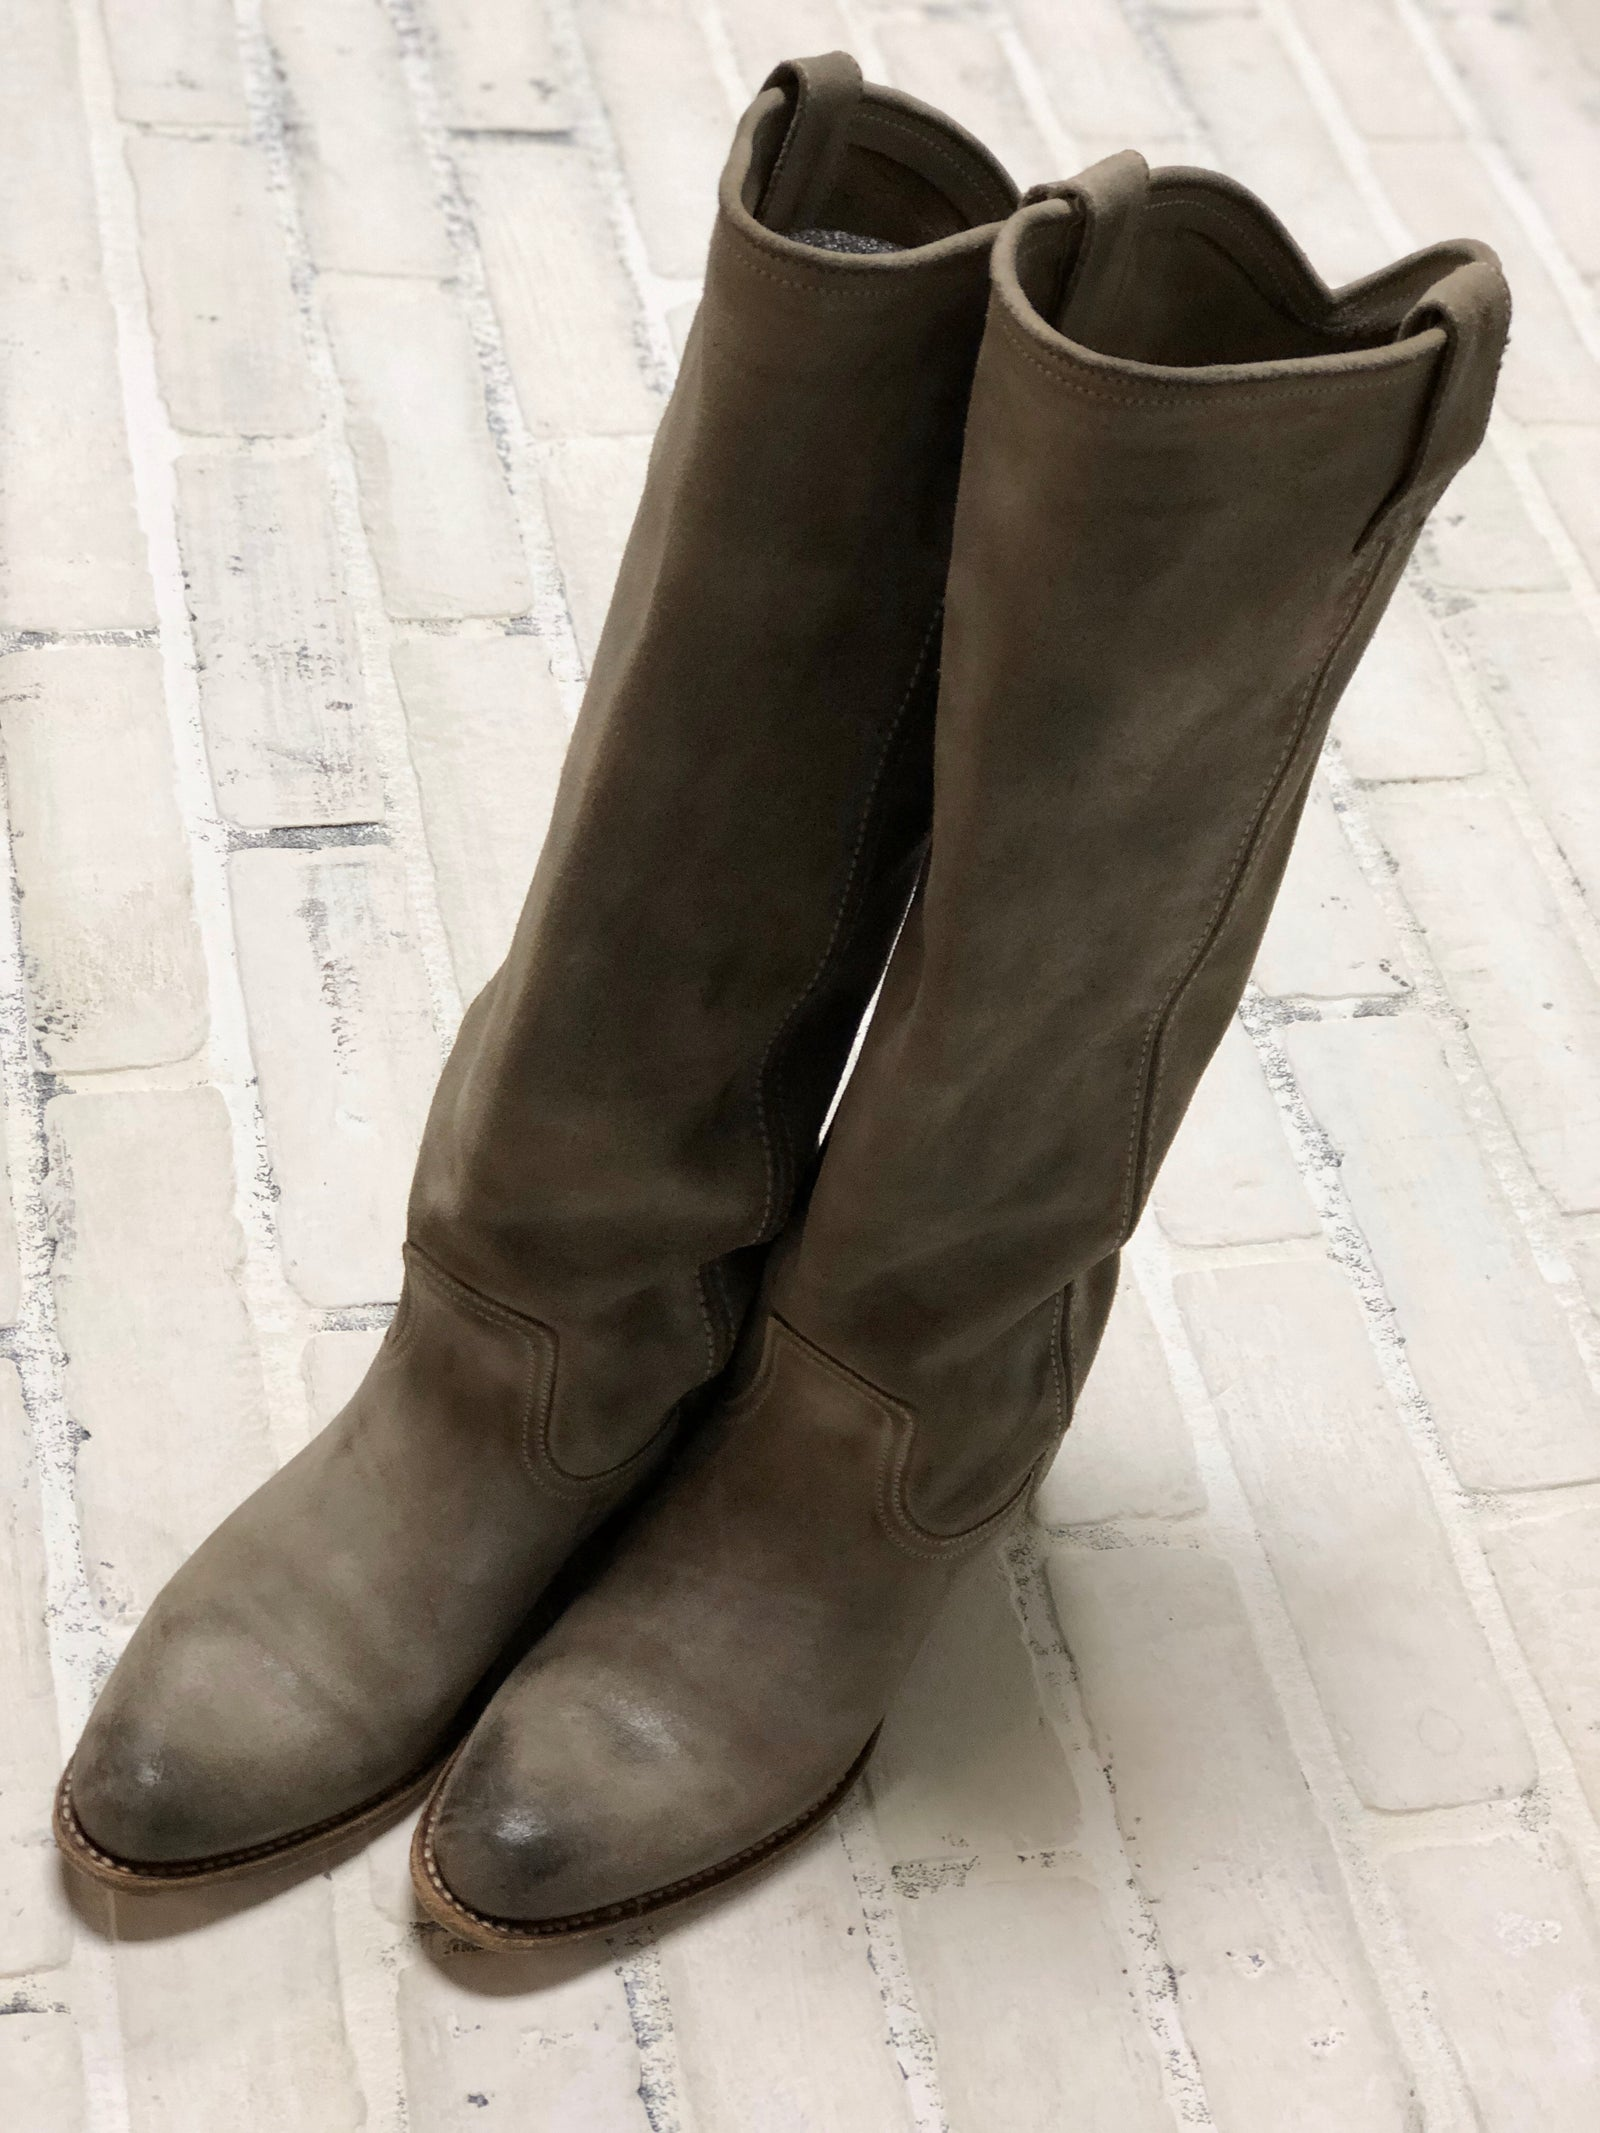 Frye Boots (6)